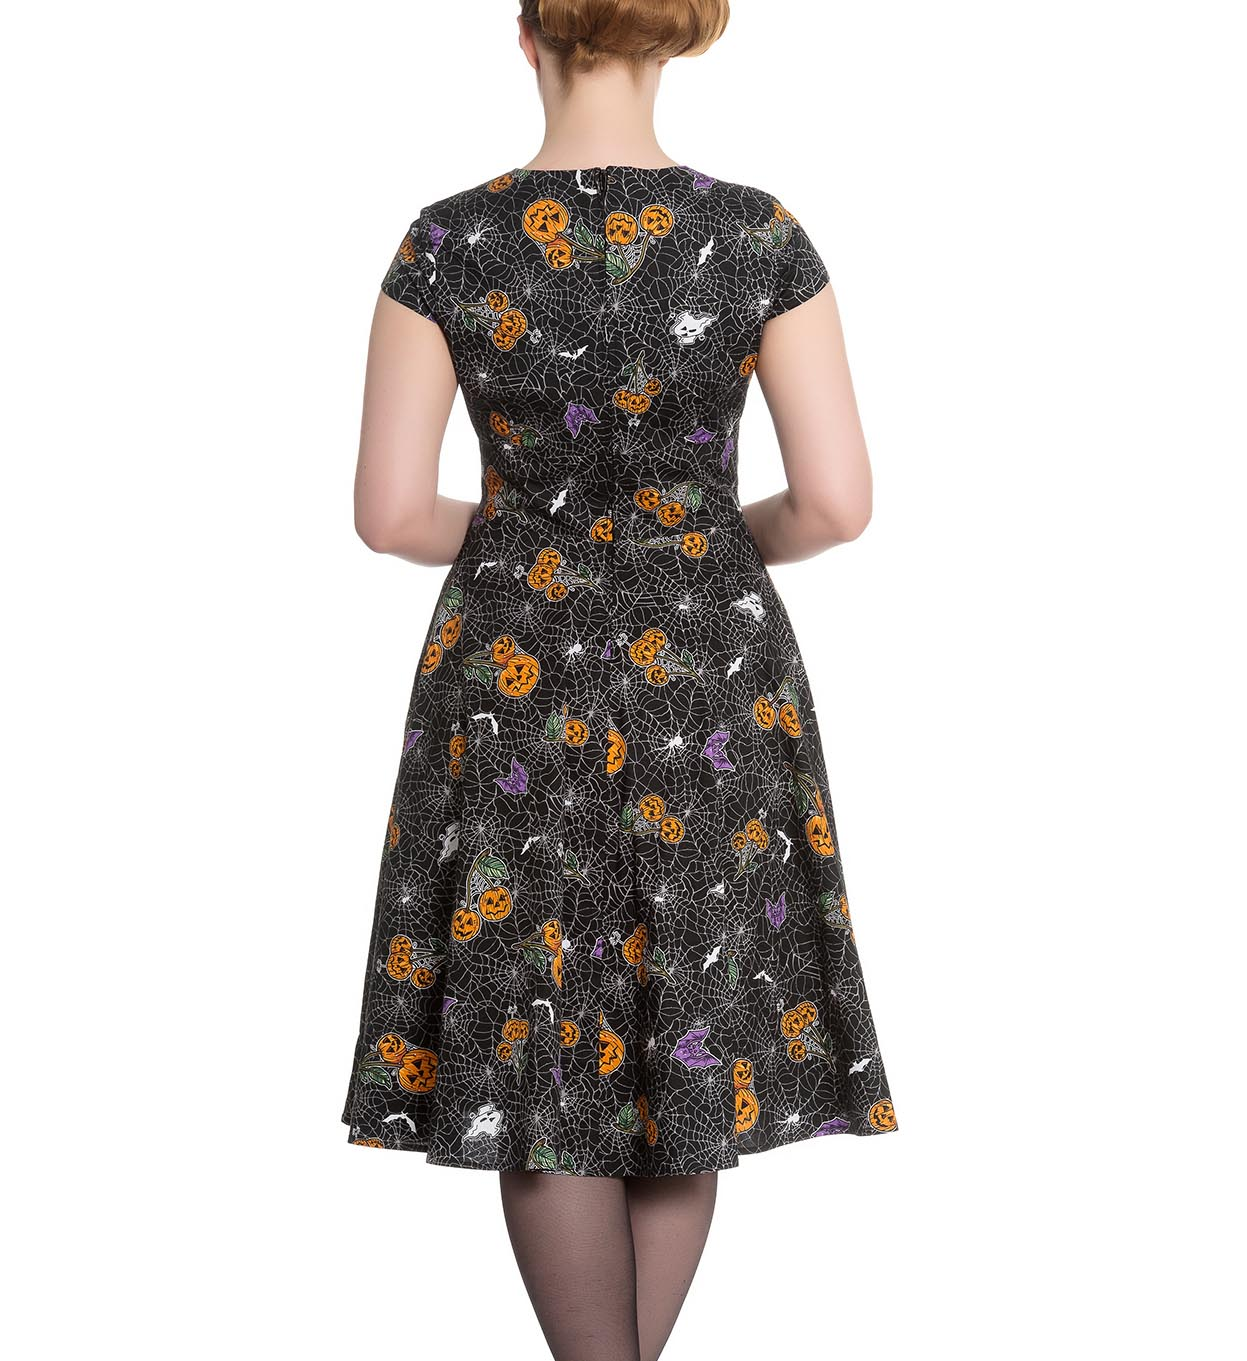 Hell-Bunny-Black-Pinup-50s-Goth-Webs-Dress-HARLOW-Halloween-All-Sizes thumbnail 33